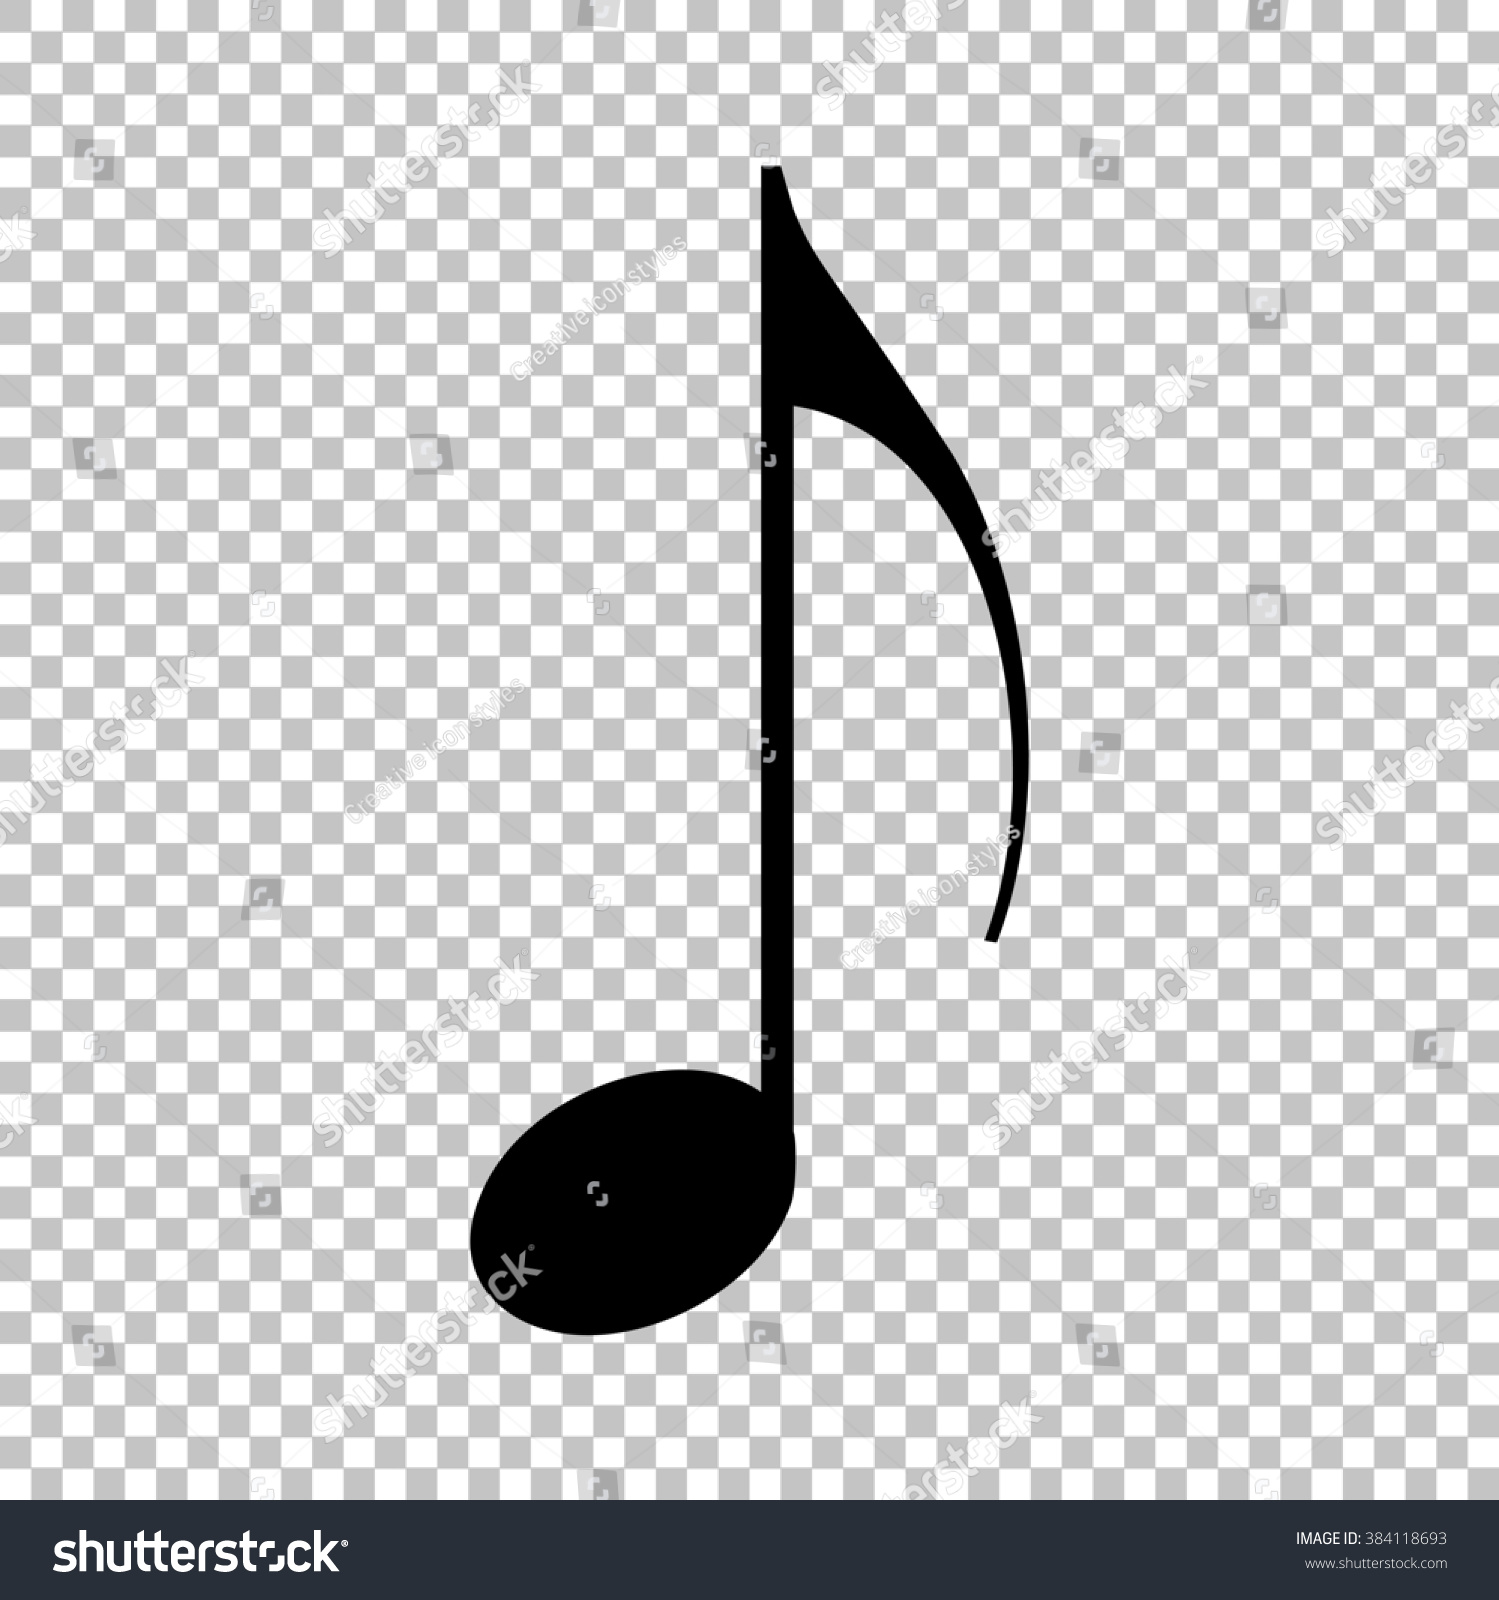 music note sign flat style icon stock illustration